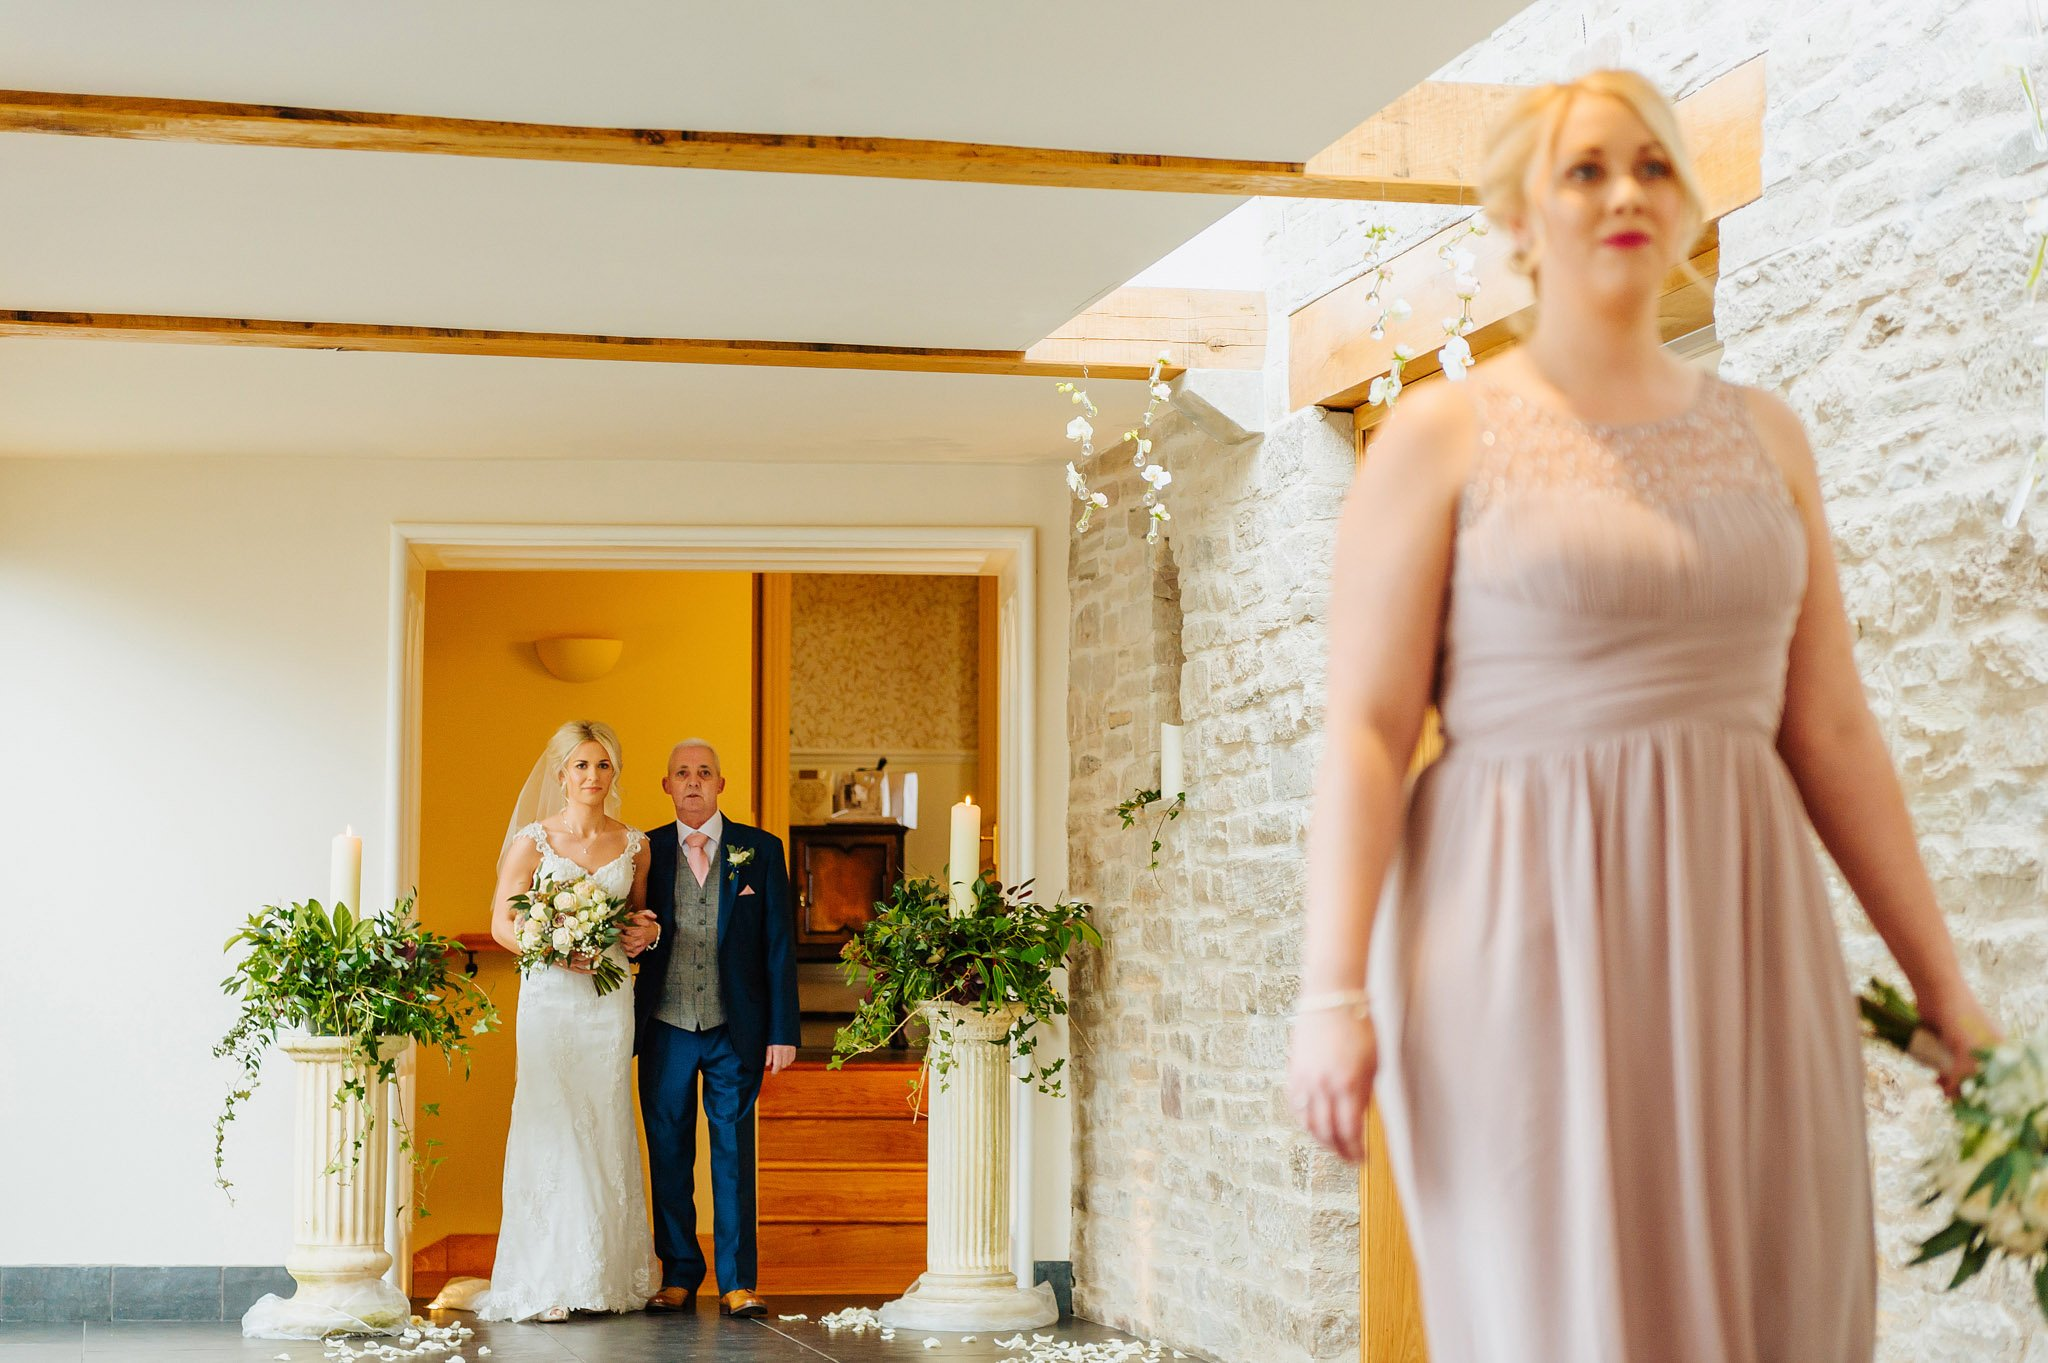 Lemore Manor wedding, Herefordshire - West Midlands | Sadie + Ken 30